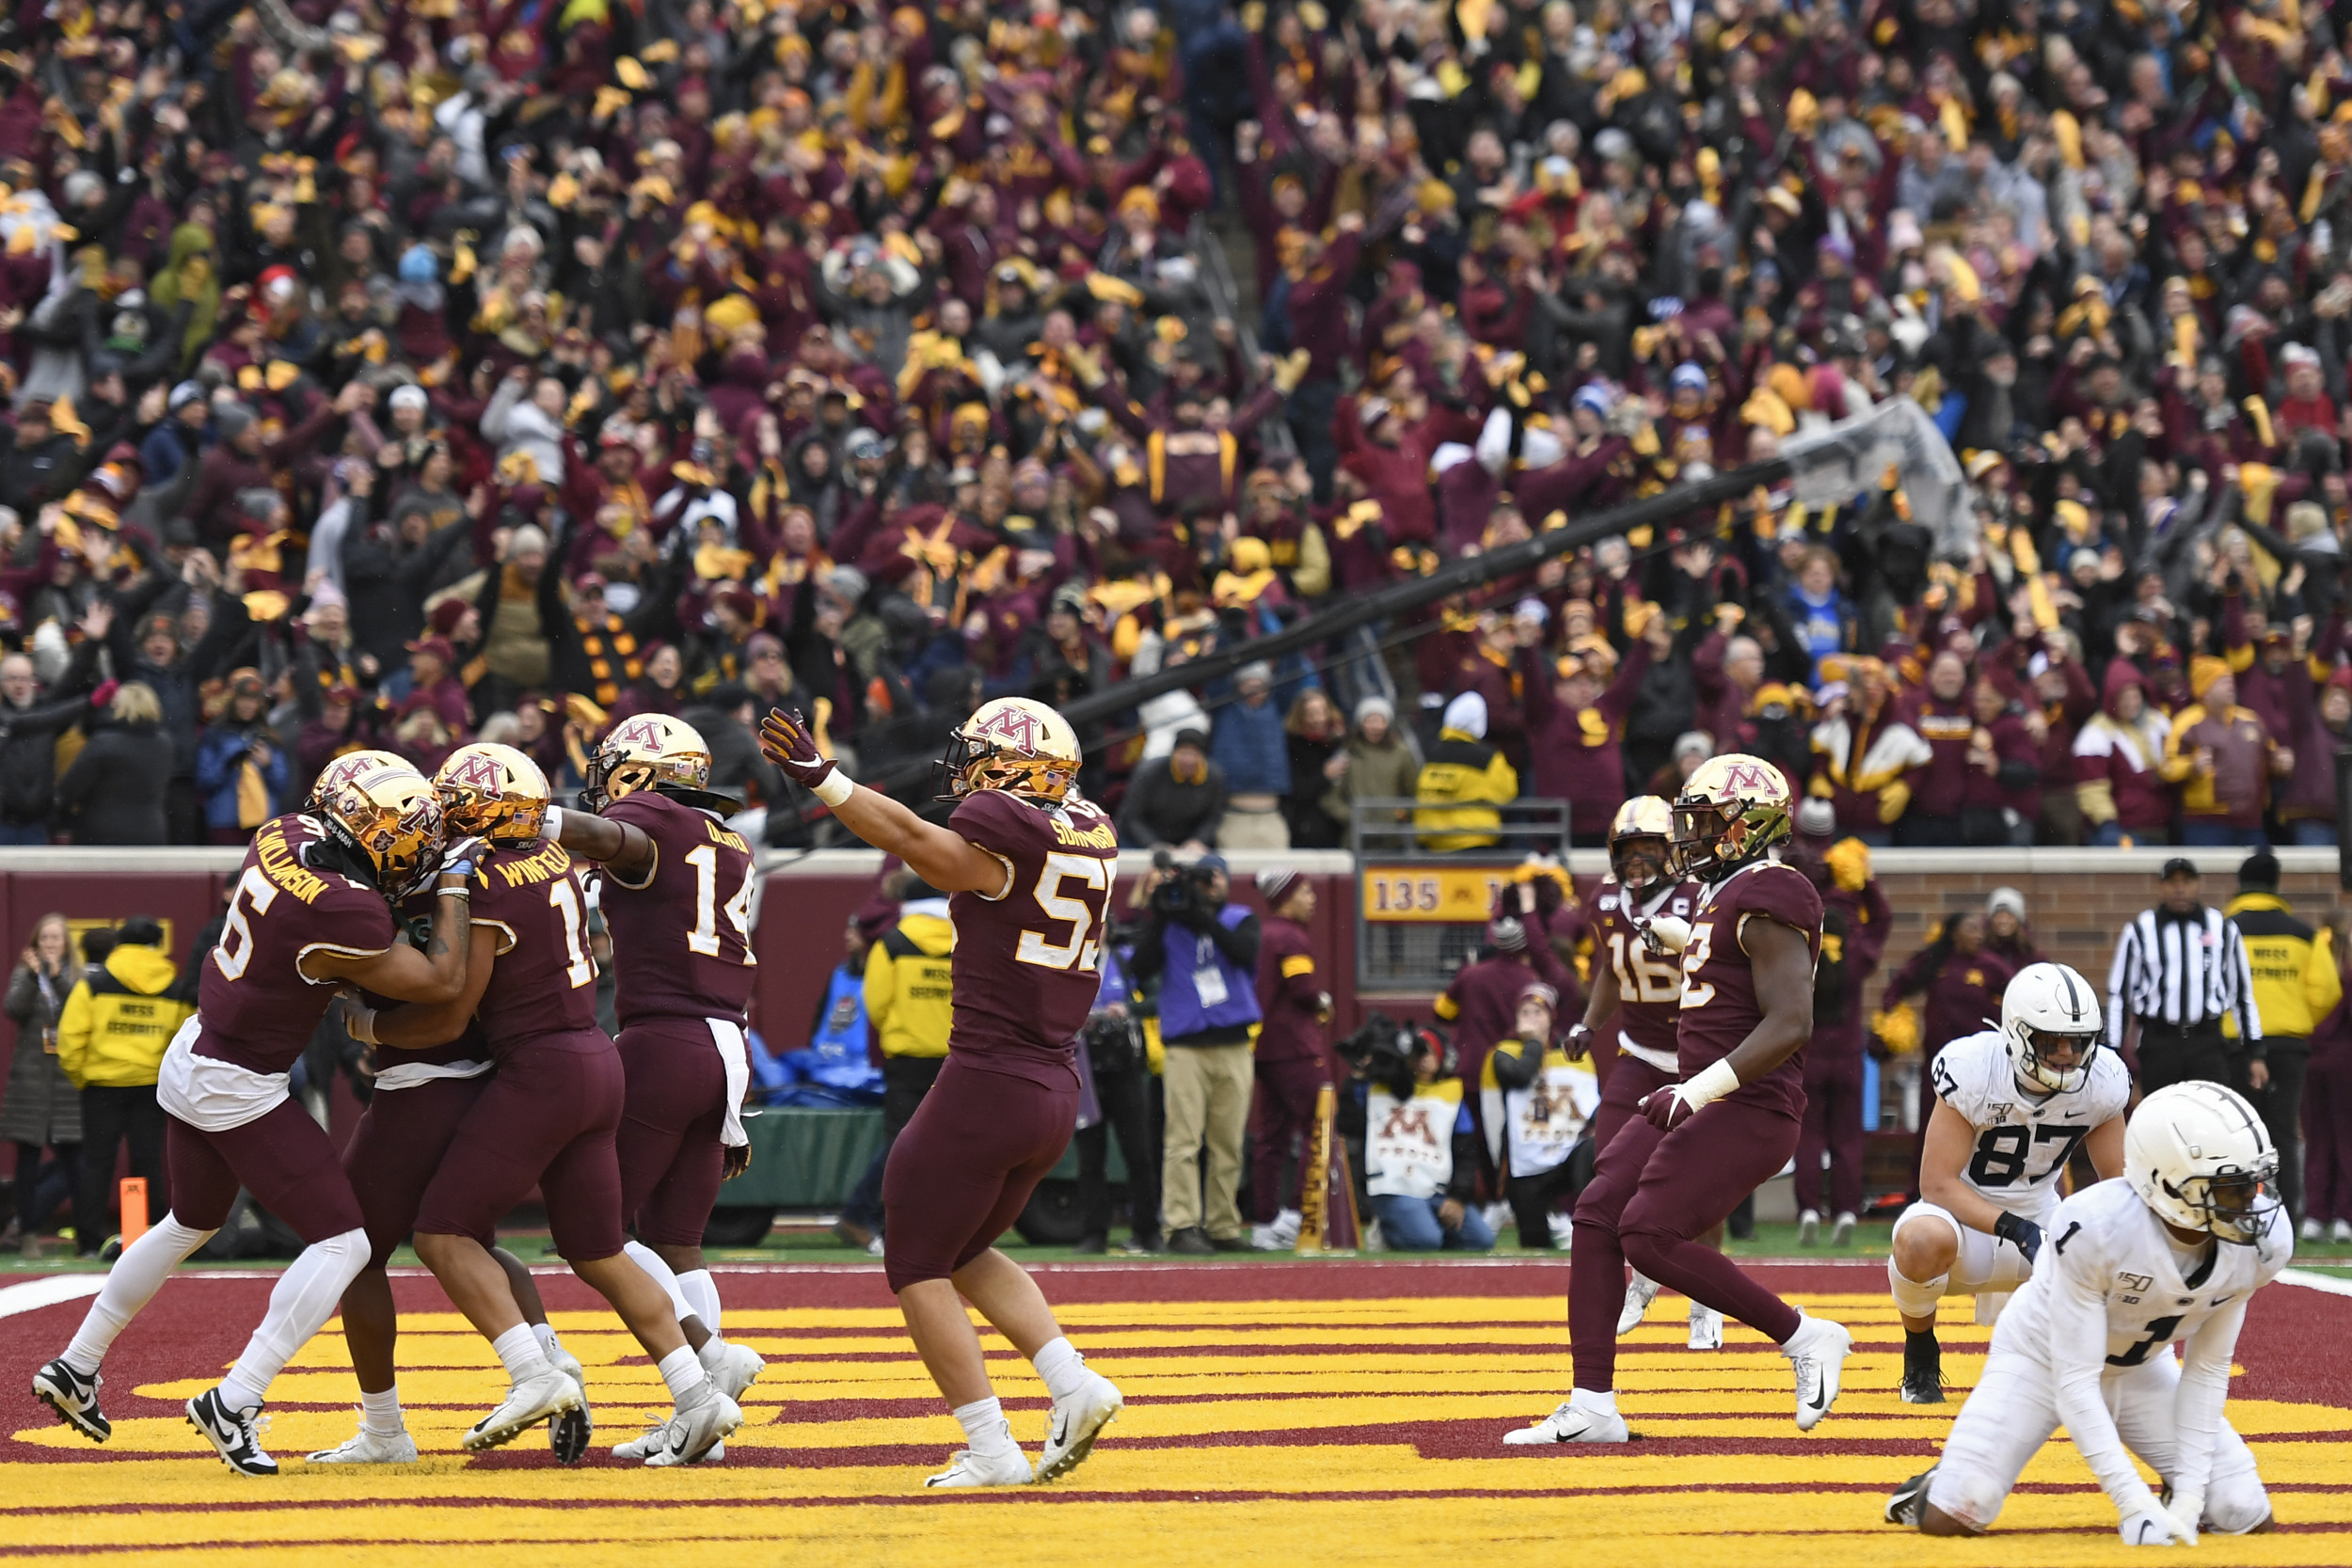 New Poll Shows Some Fans Want Minnesota In College Football